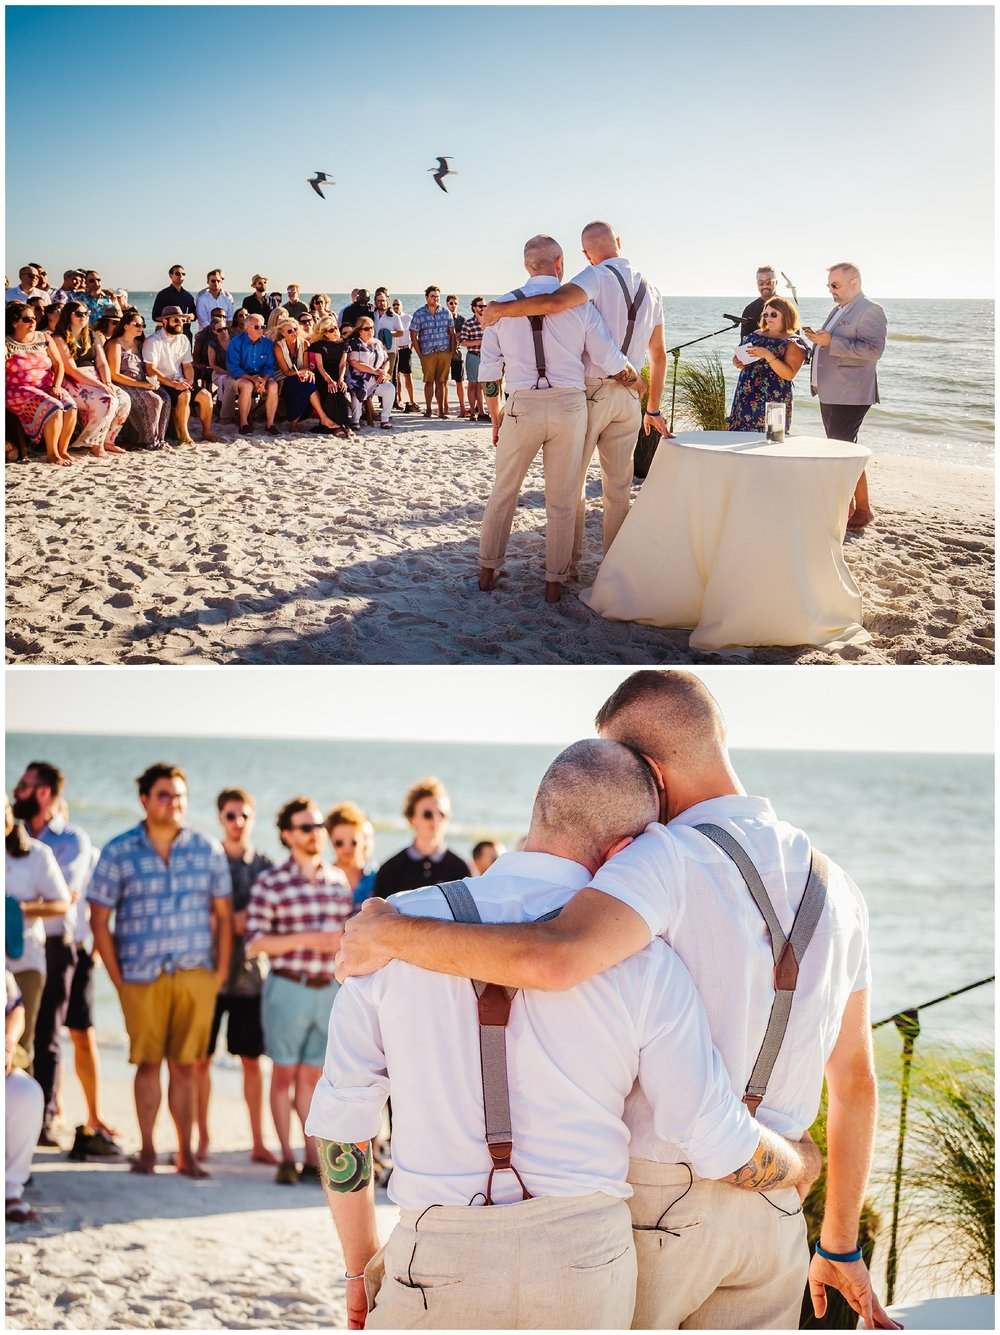 st-pete-same-sex-wedding-photographer-equal-love-gay-drag-queens_0024.jpg